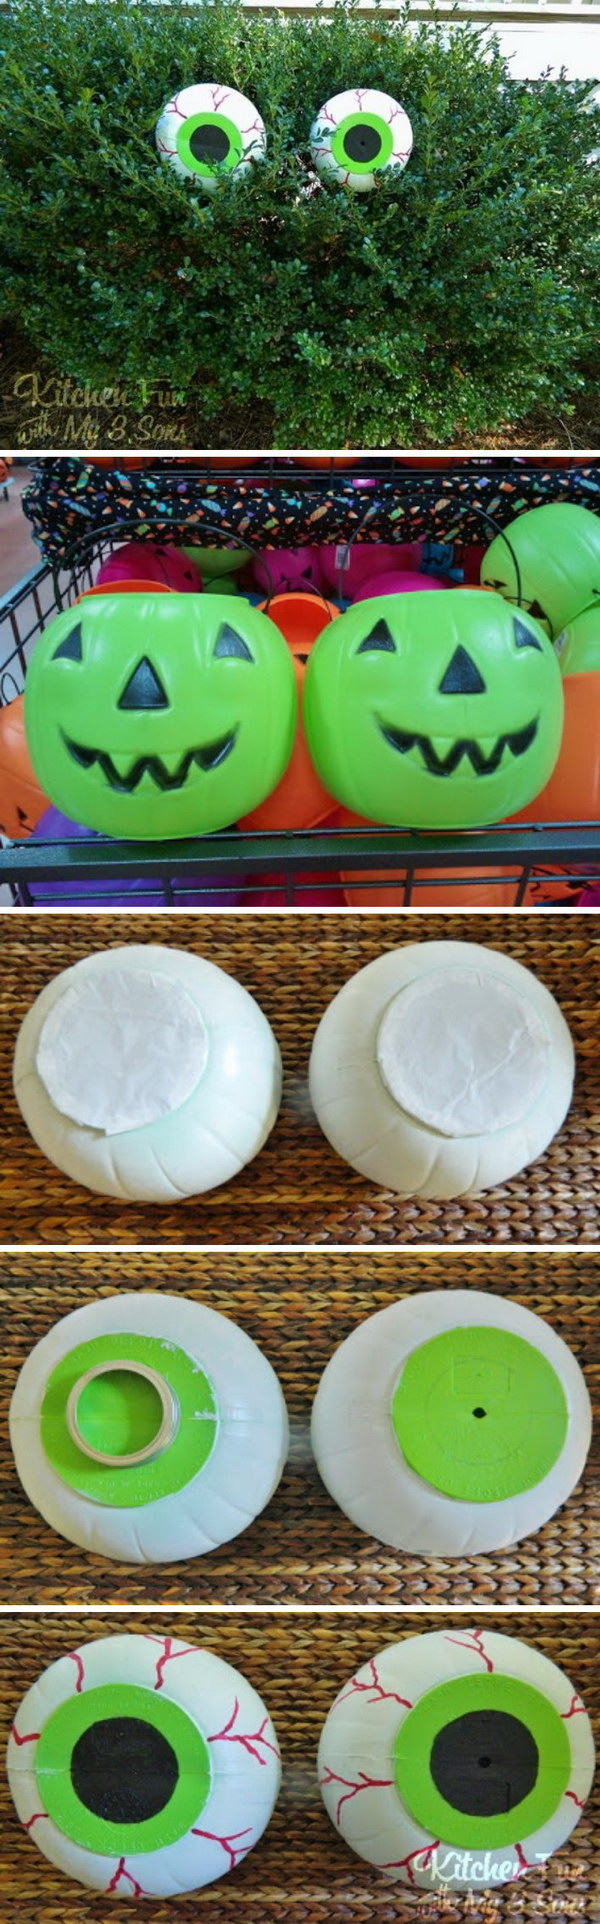 3 dollar store crafts for halloween - 30 Dollar Store DIY Projects for Halloween